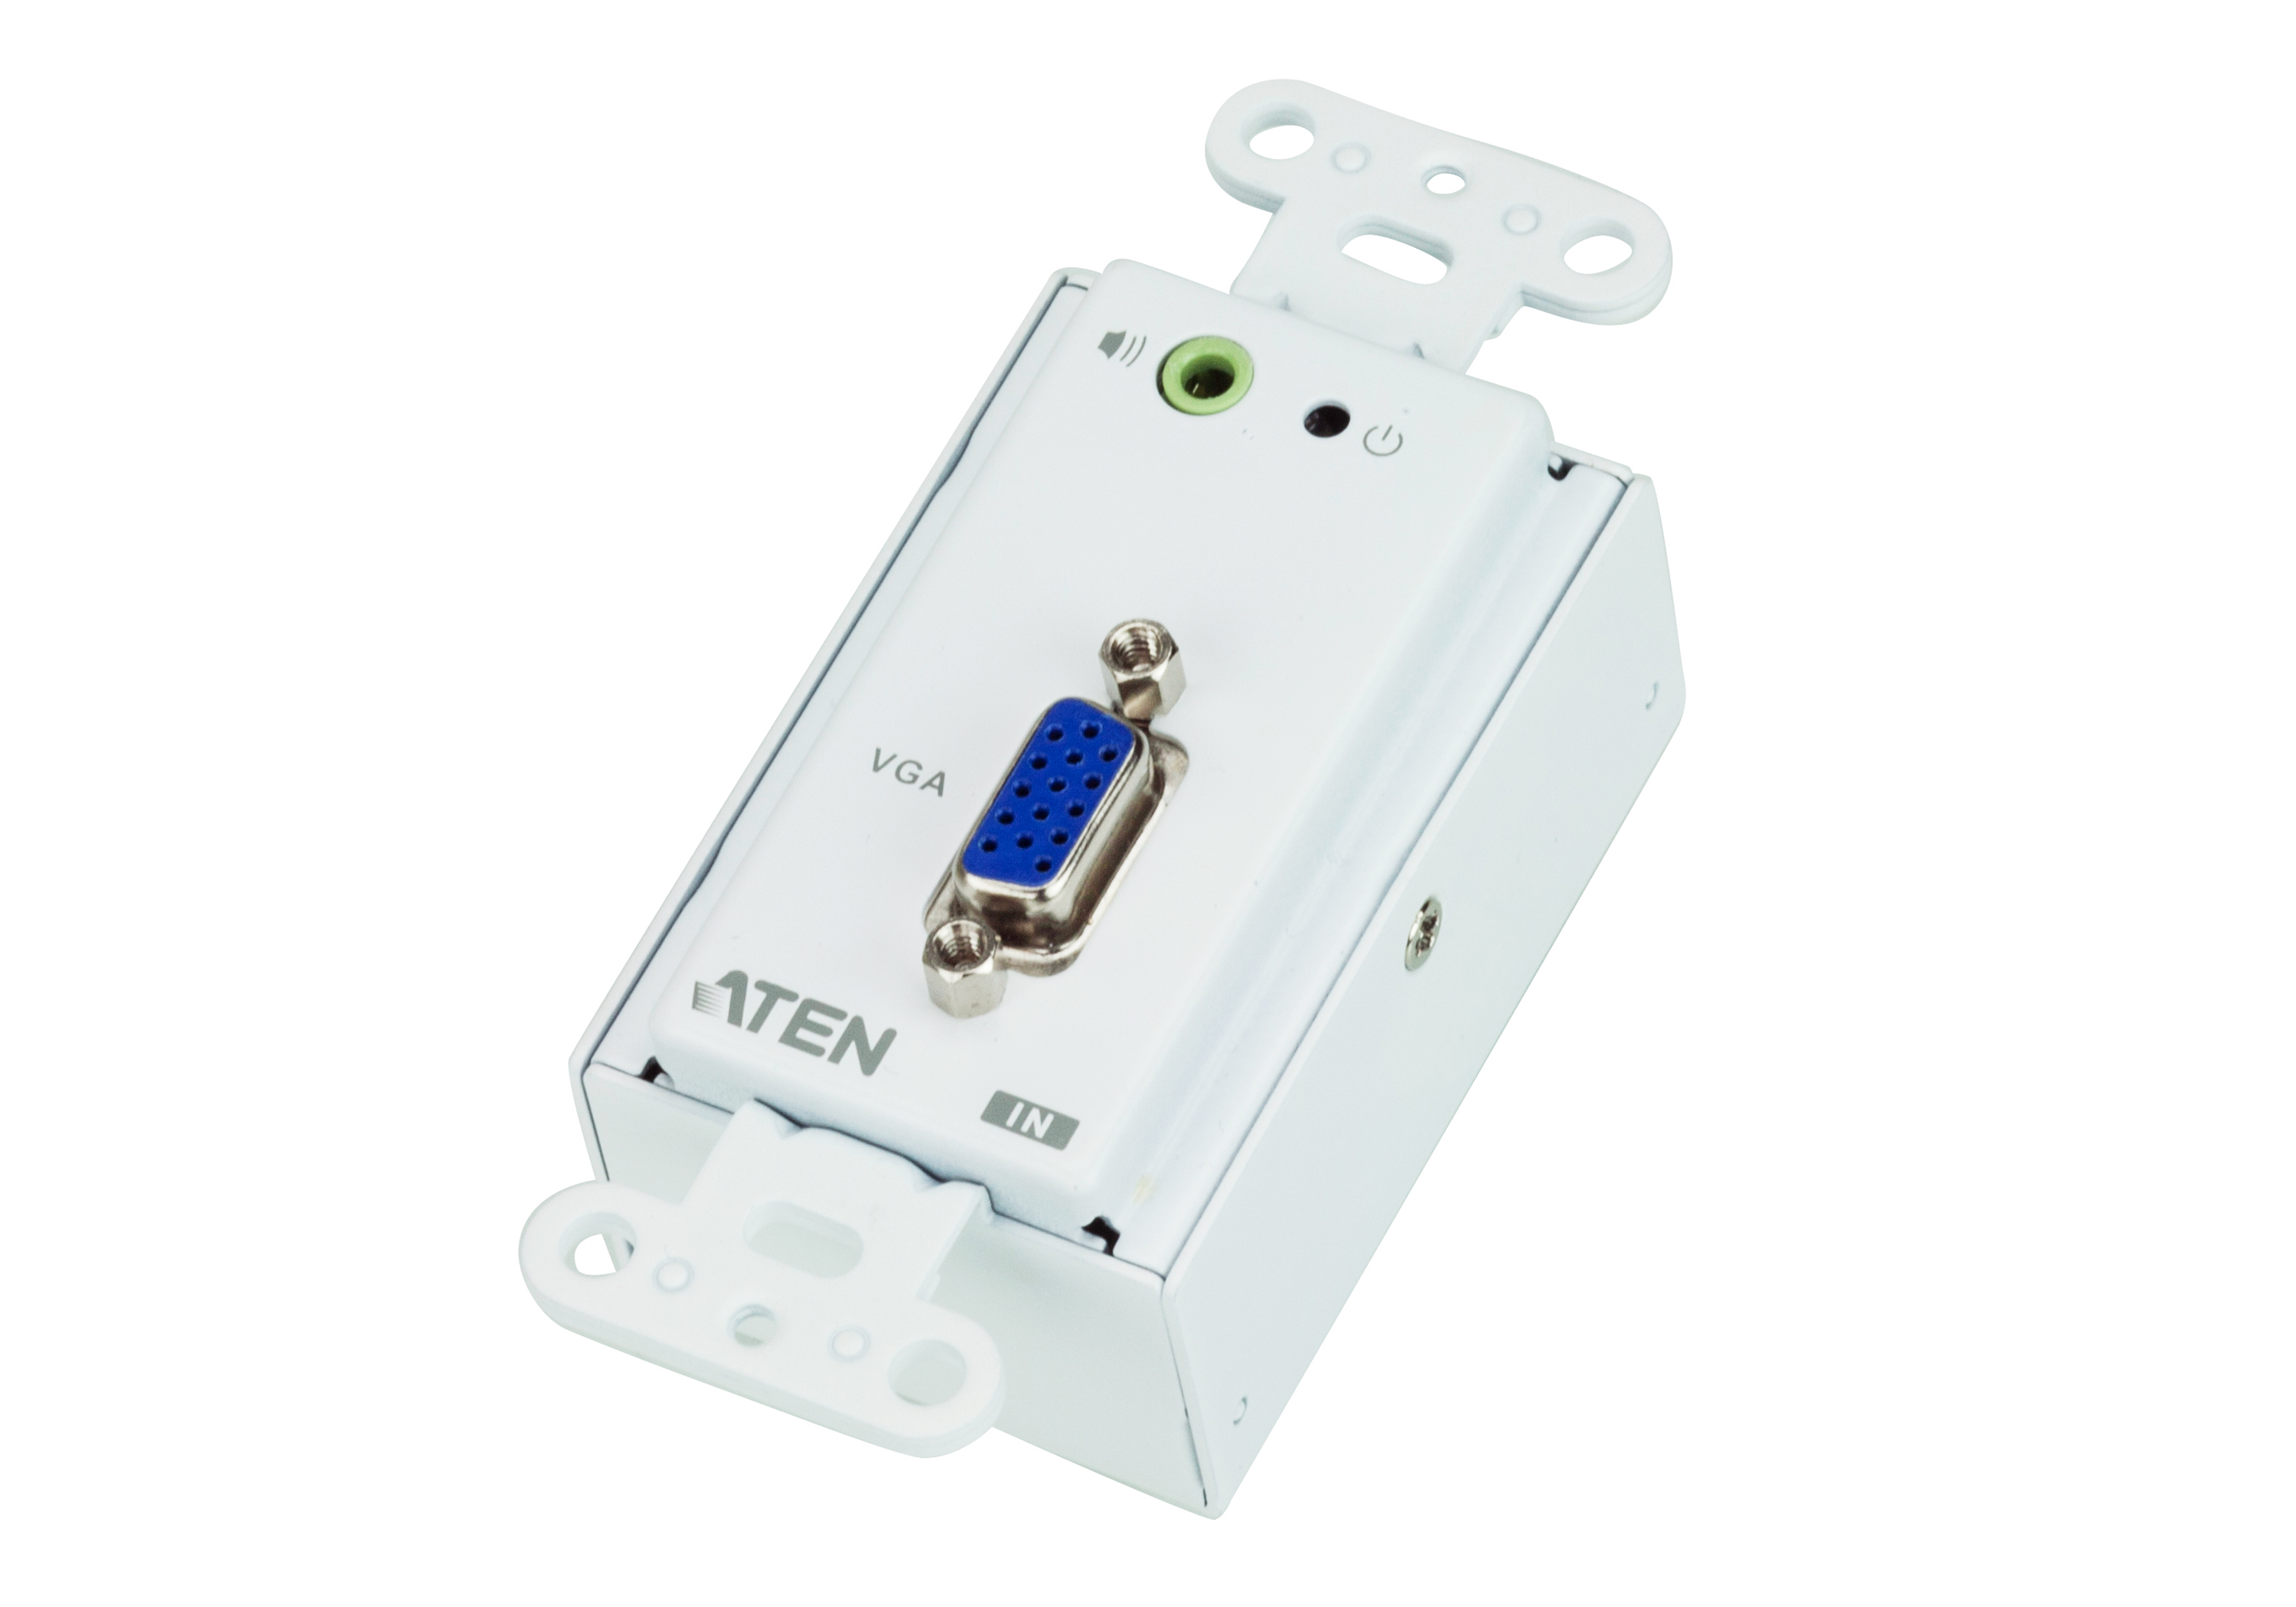 VGA/Audio Cat 5 Transmitter Wall Plate (US) (1280 x 1024@150m